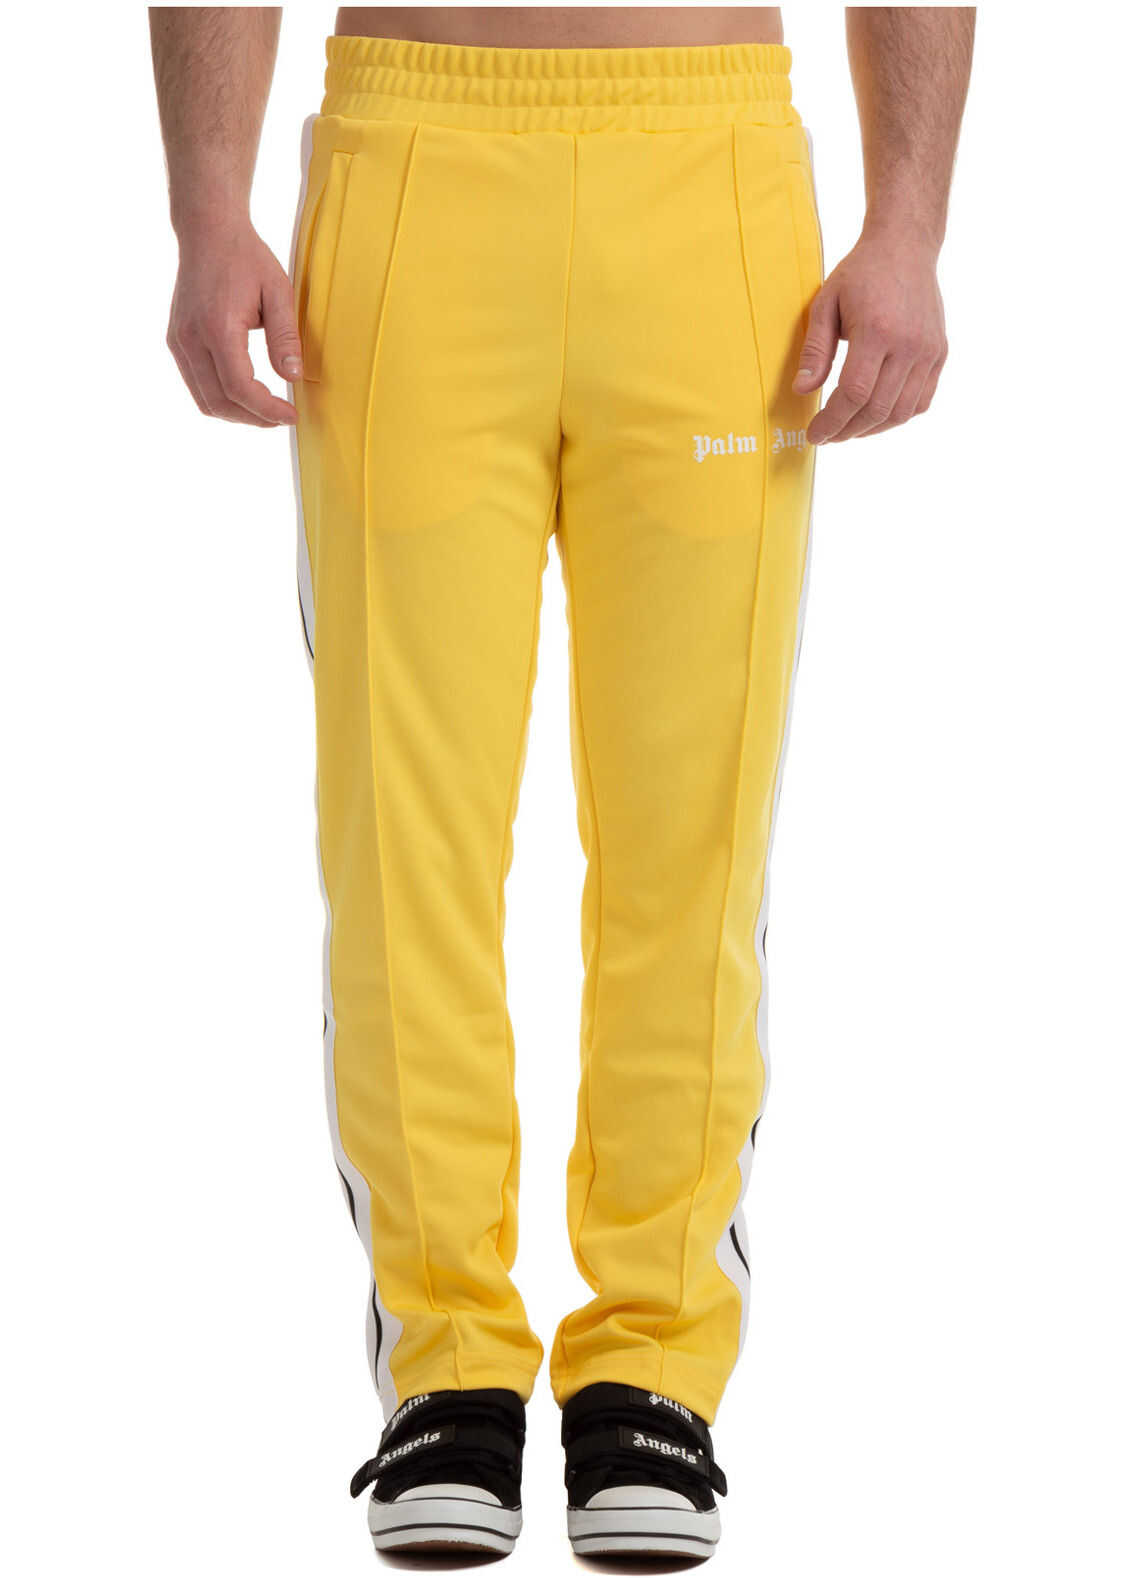 Palm Angels Tracksuit Trousers Yellow imagine